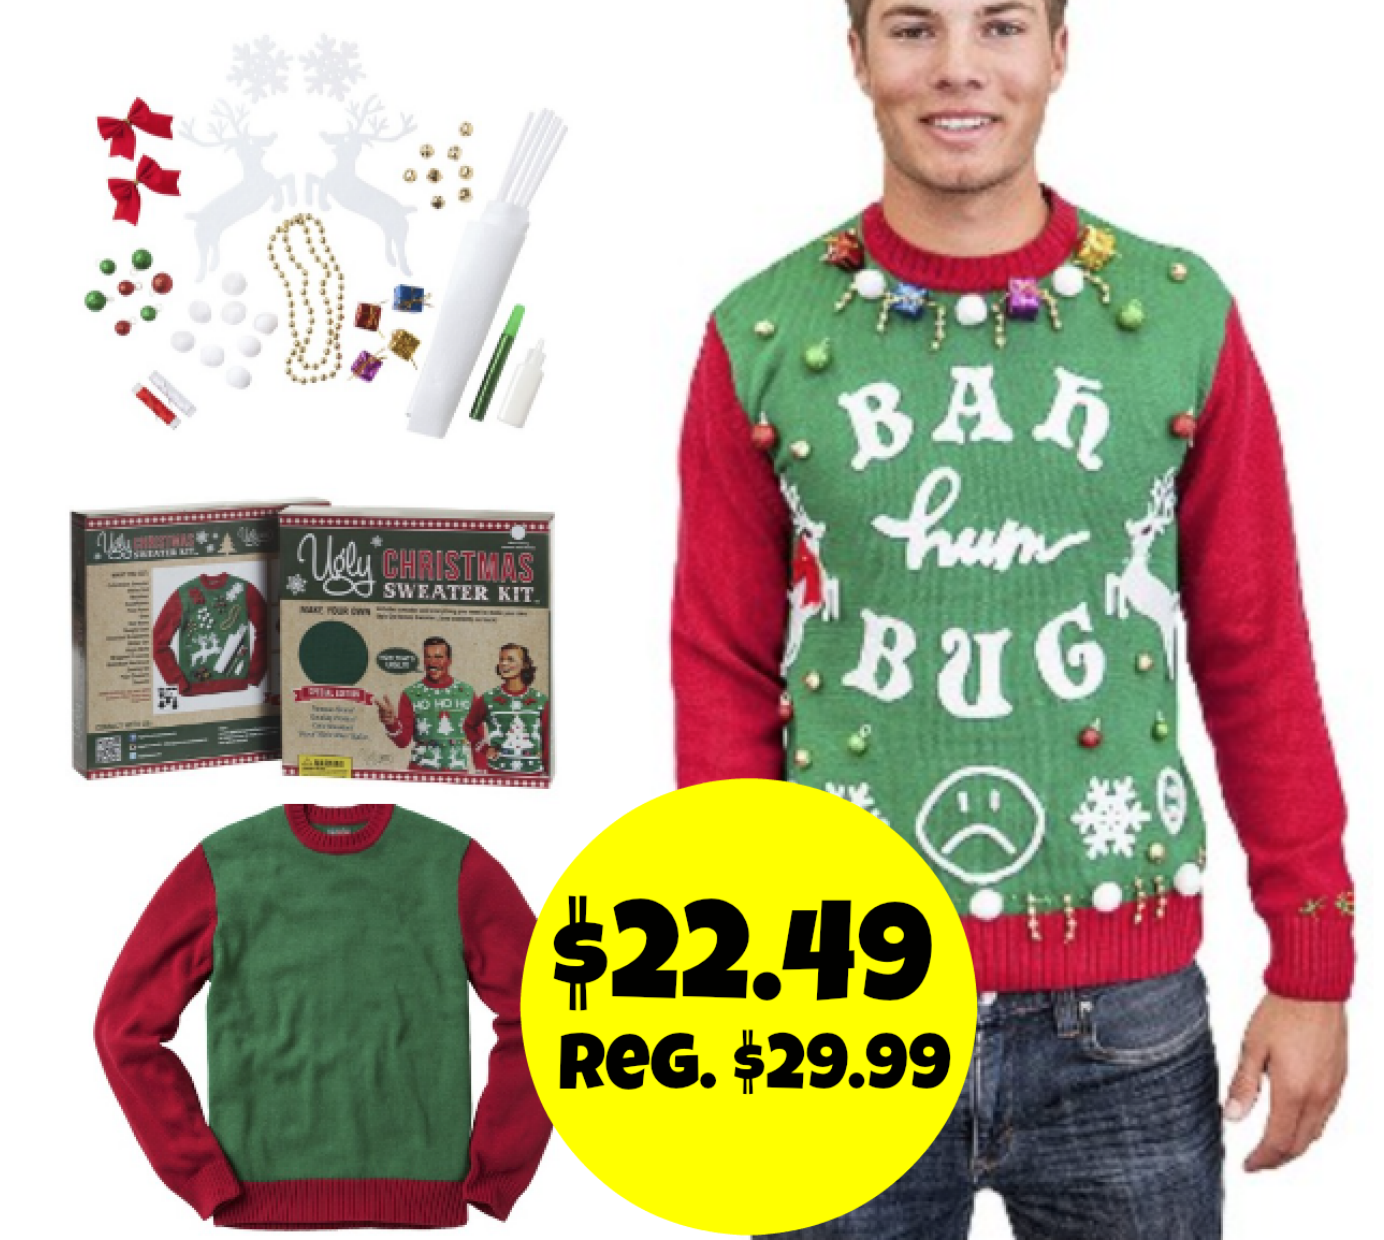 Make Your Own Ugly Christmas Sweater Kit Target - Gray Cardigan ...